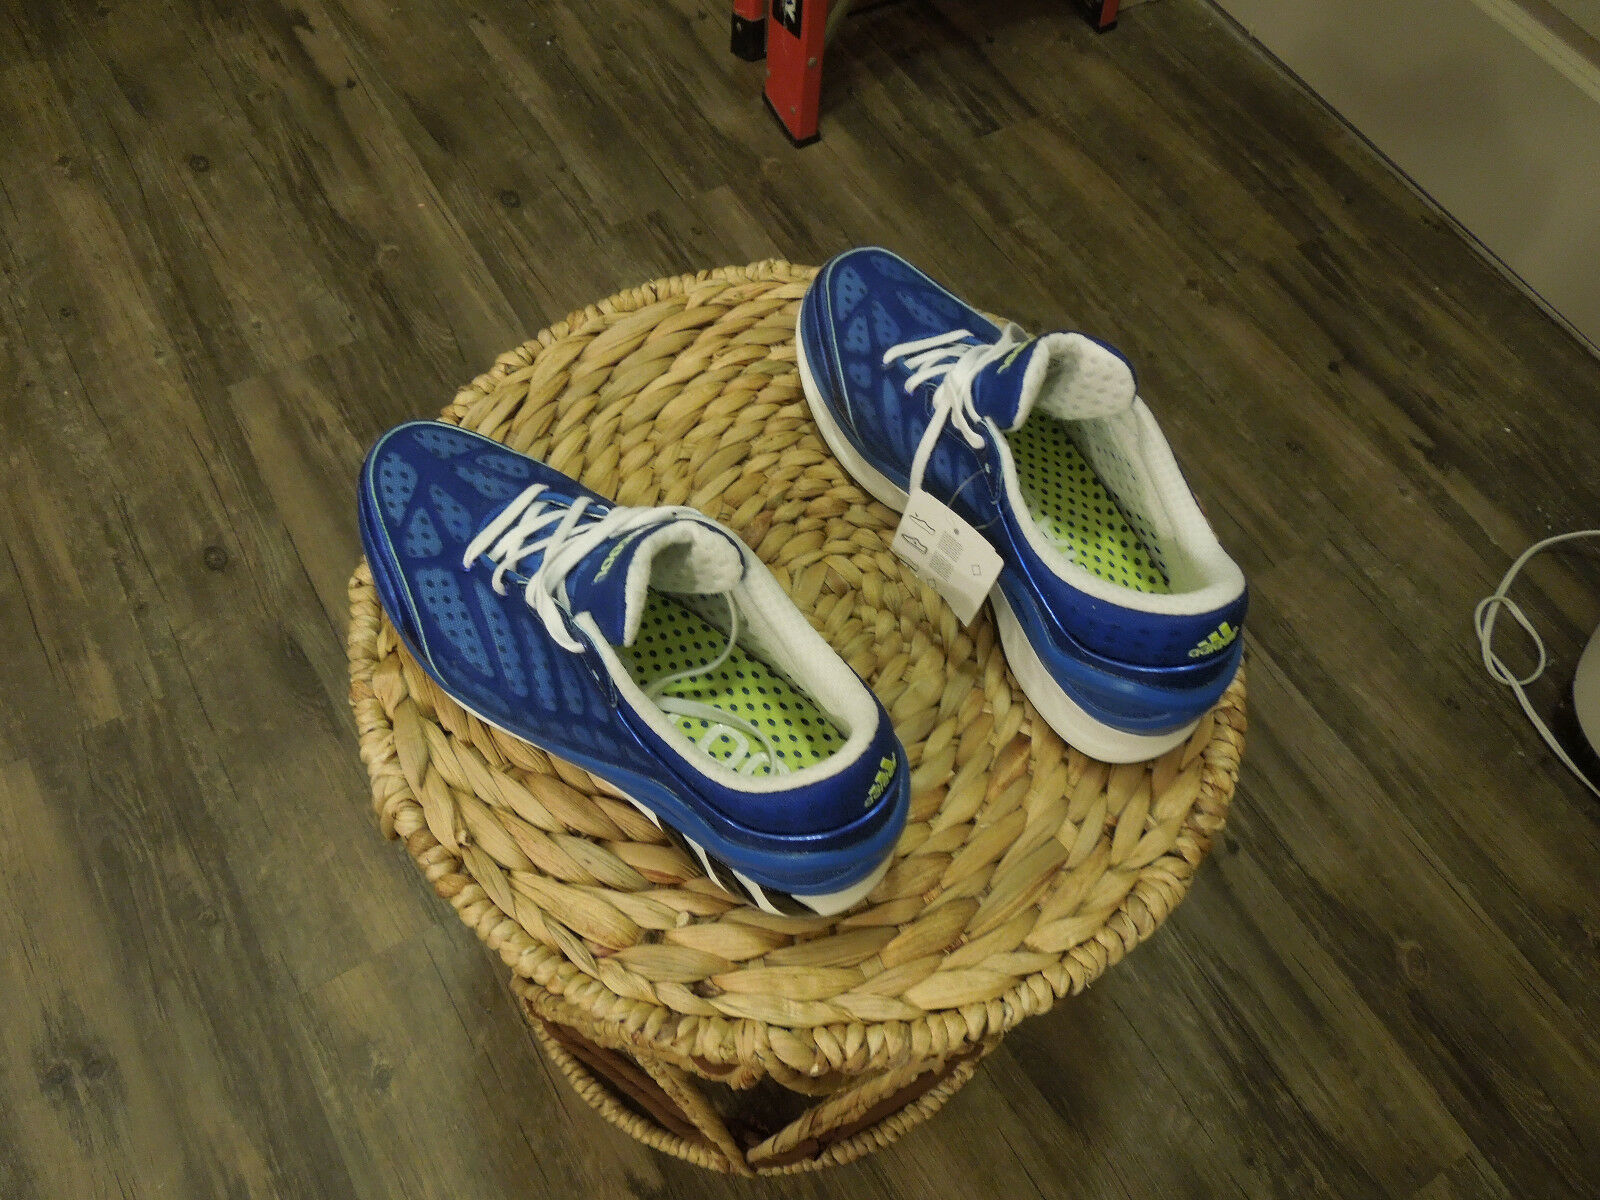 Adidas CC Seduction shoes, blue, size 9, new with box